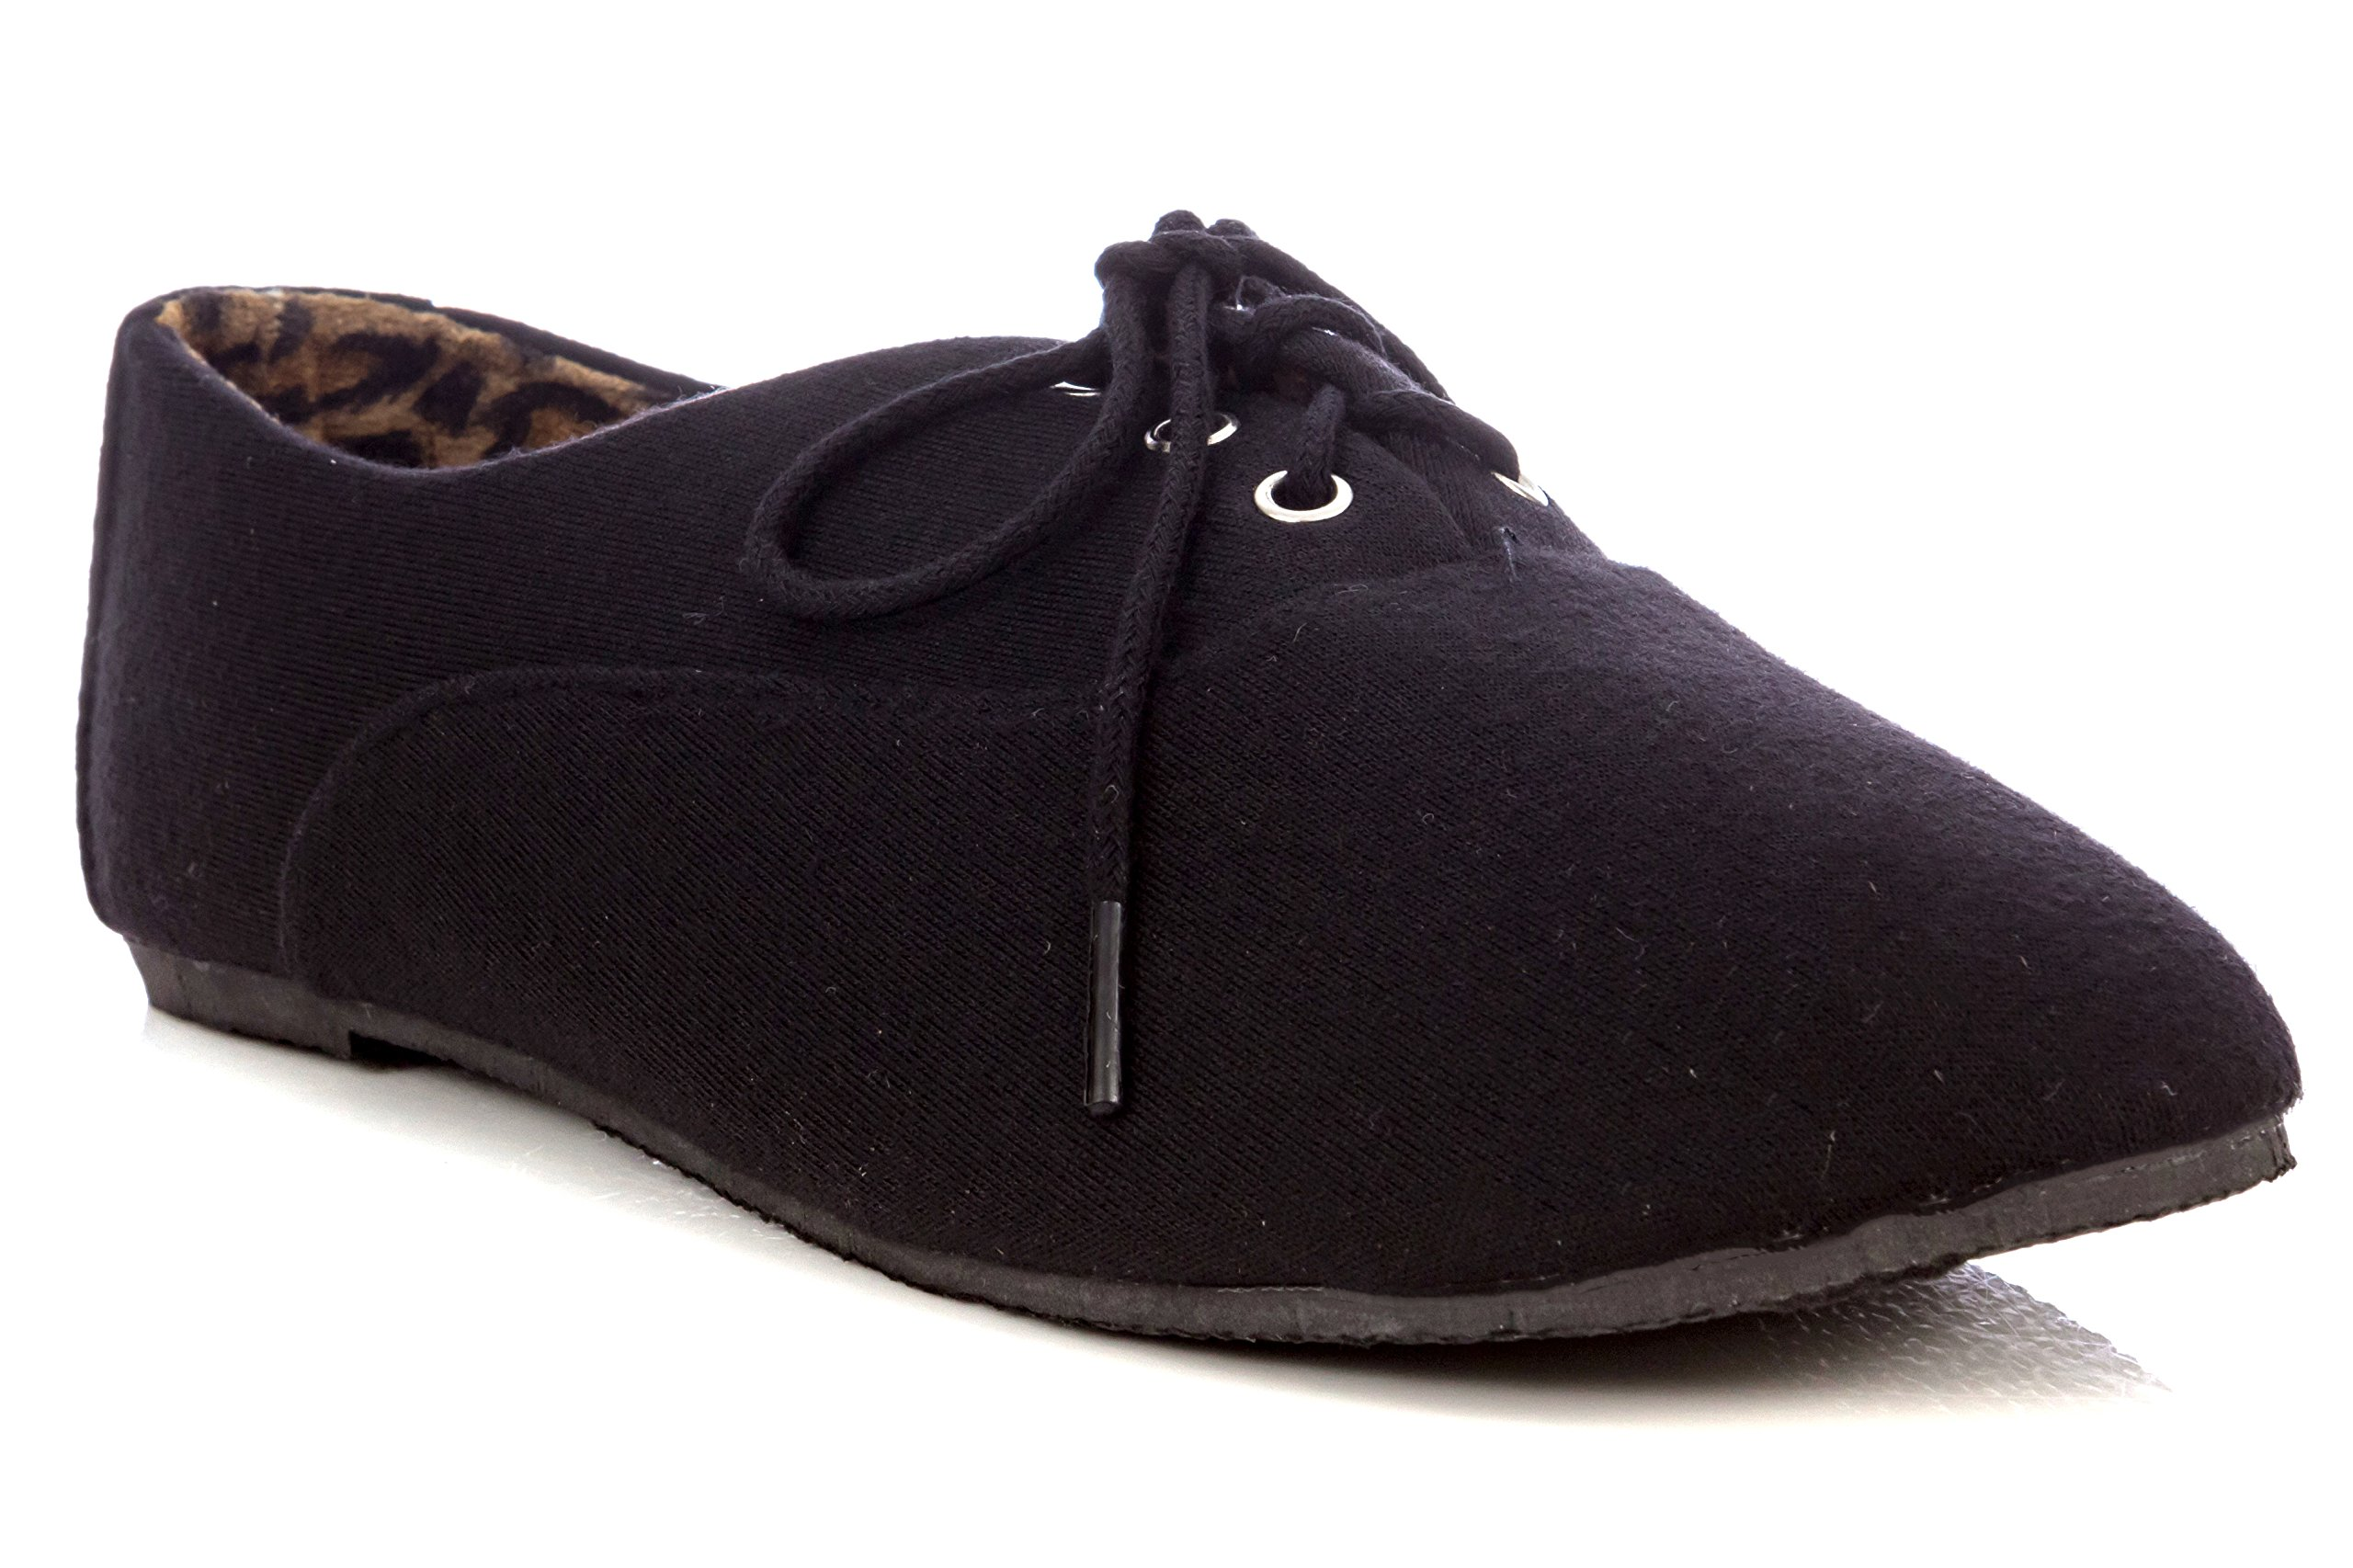 Simply Petals Girl's Lace-Up Oxford Ballet Flat in Black Size: 11